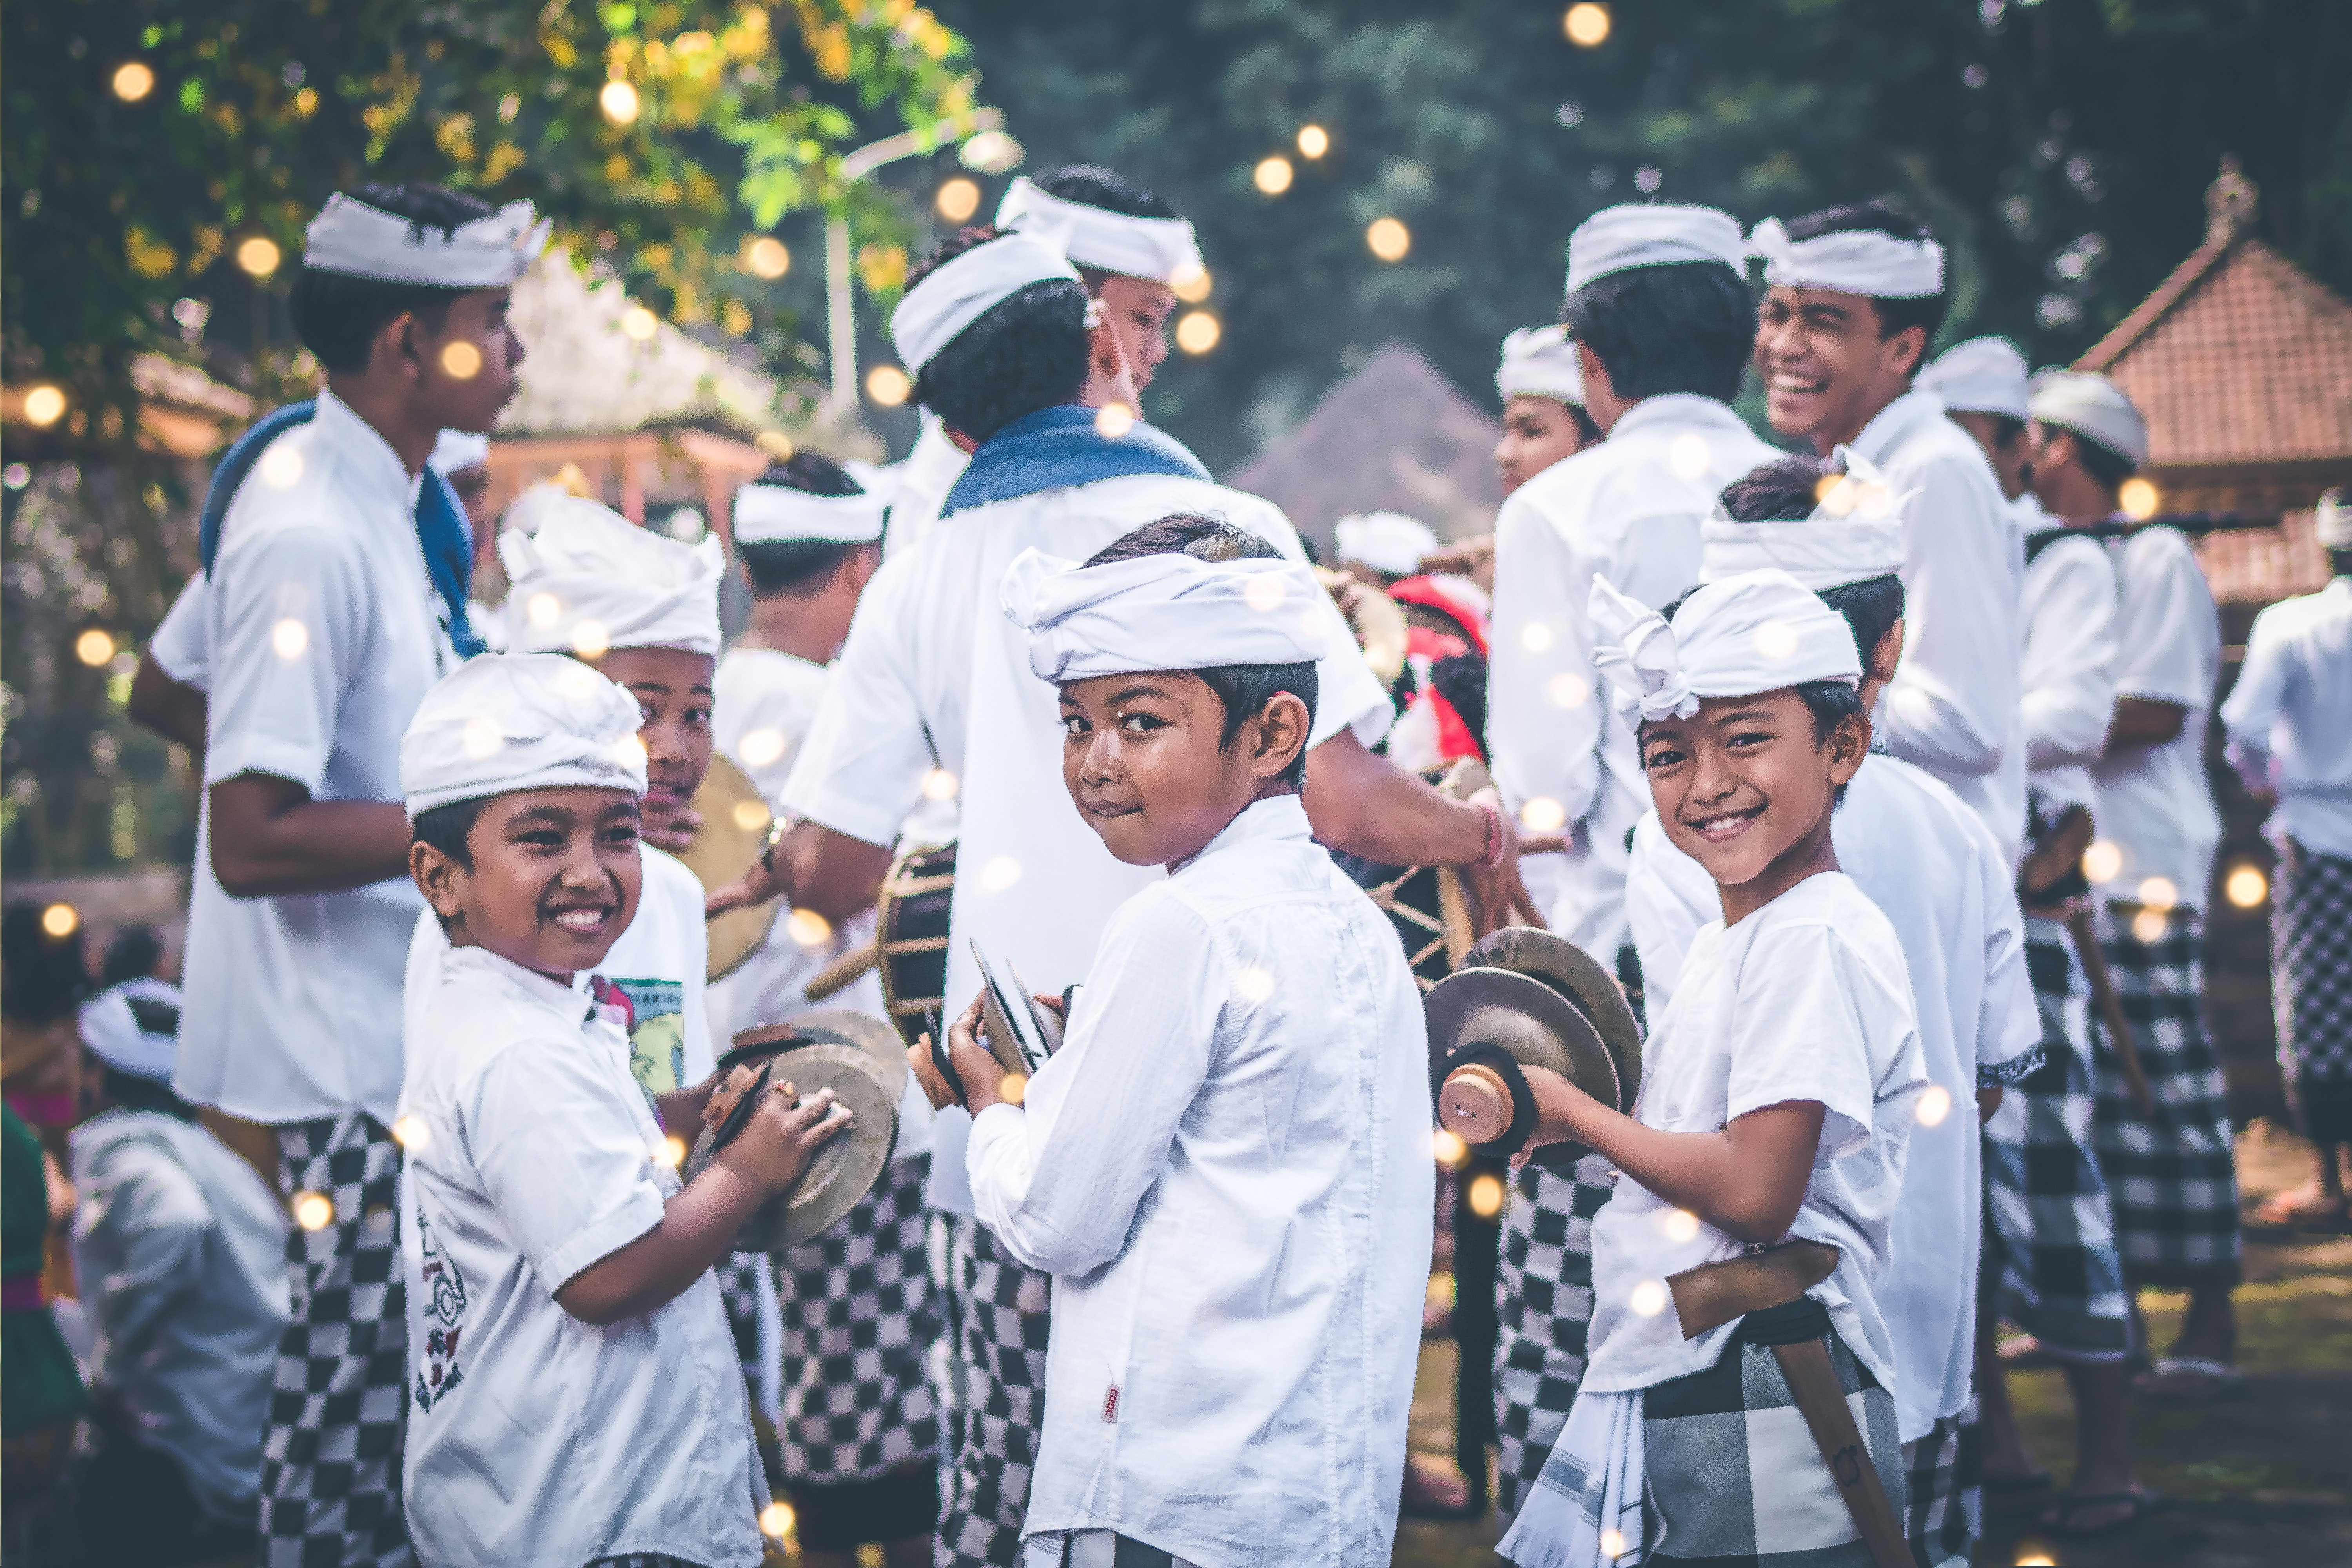 balinese-children-costume-1338146jpg